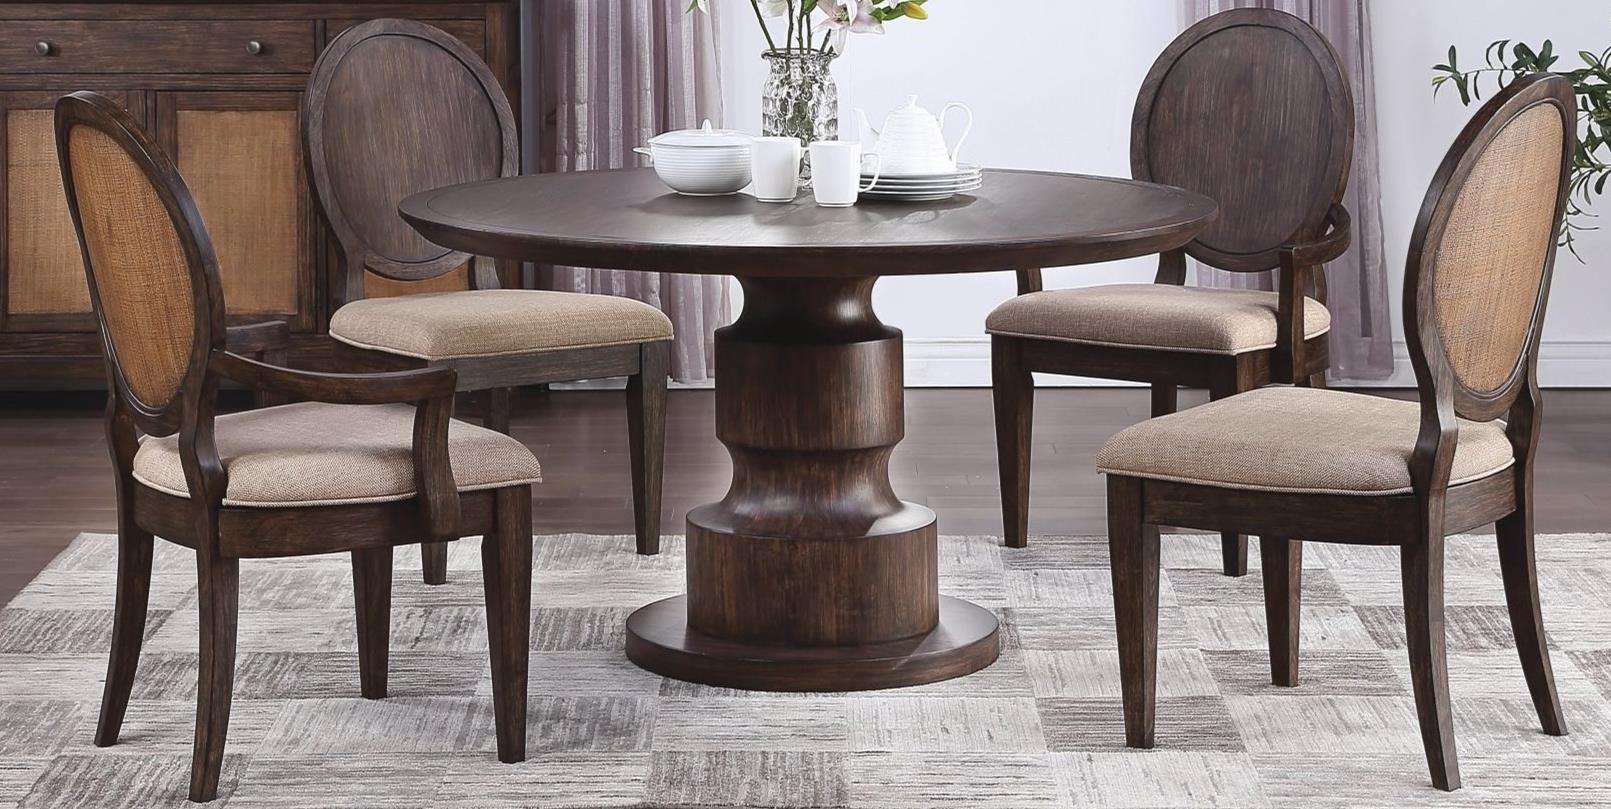 Wakefield 5-Piece Table and Chair Set by Flexsteel Wynwood Collection at Northeast Factory Direct